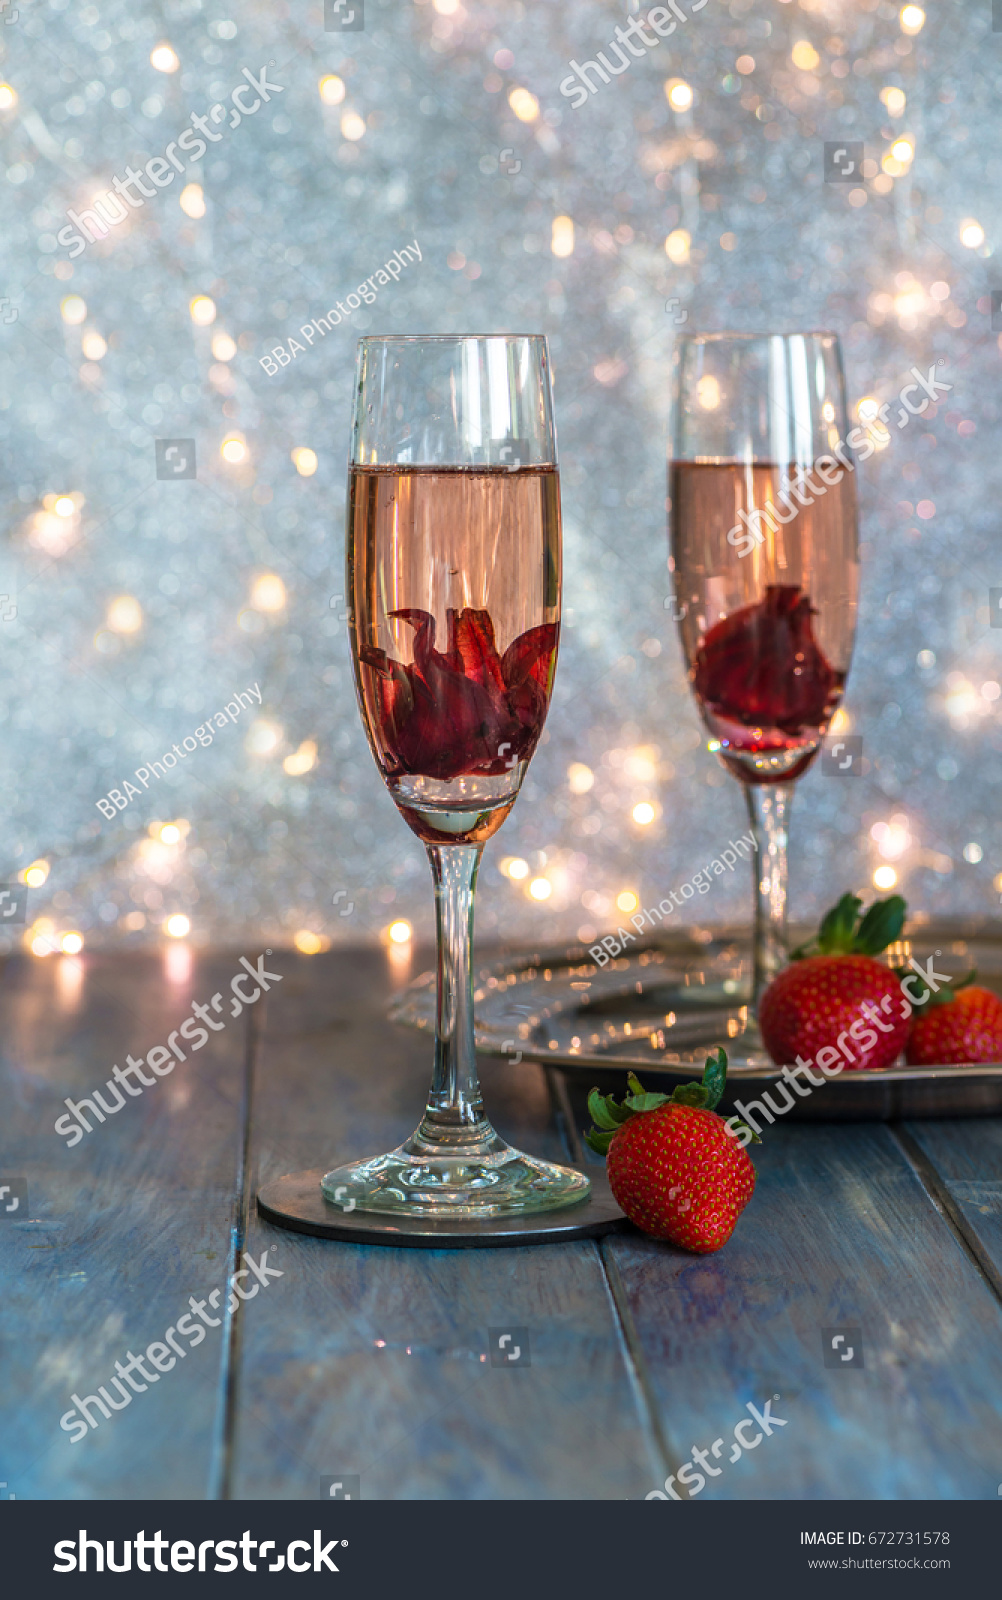 Champagne glasses hibiscus flower inside strawberries stock photo champagne in glasses with hibiscus flower inside and strawberries on festive background izmirmasajfo